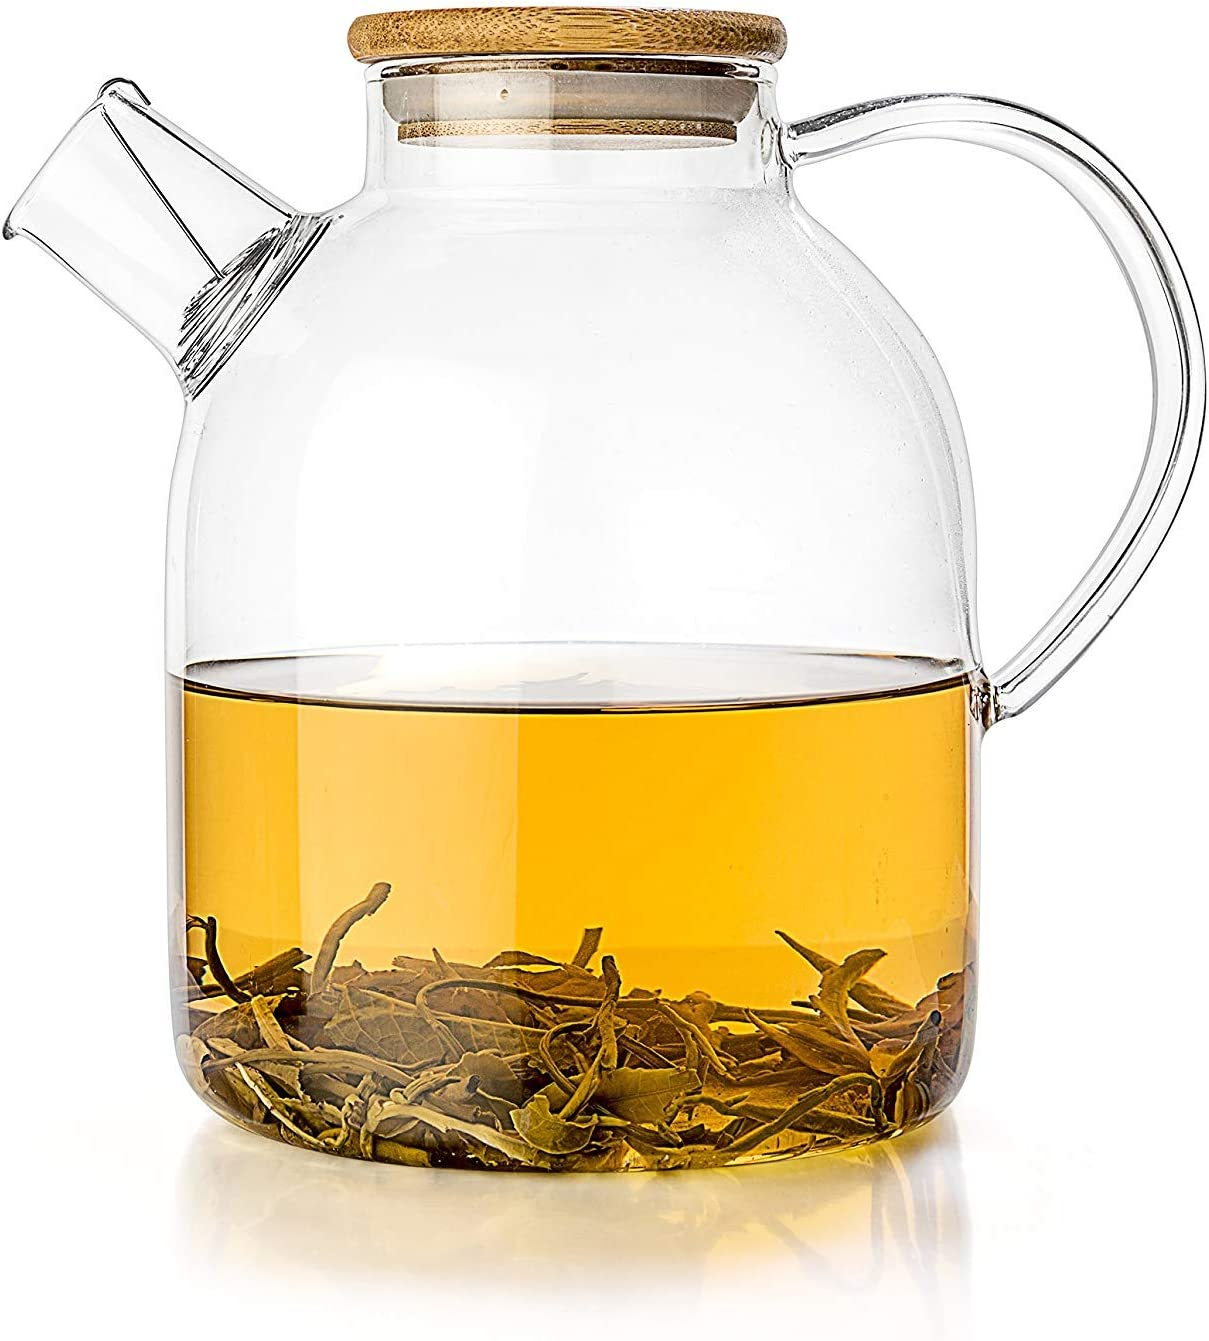 NATURE'S MARKET : Glass Kettle 34-ounce - Stove-top Safe - Heat Resistant Borosilicate - Pitcher - Carafe - Teapot - No-Dripping - Great For Tea Juice Water - Hot and Iced - Bamboo Lid - Filter Spout